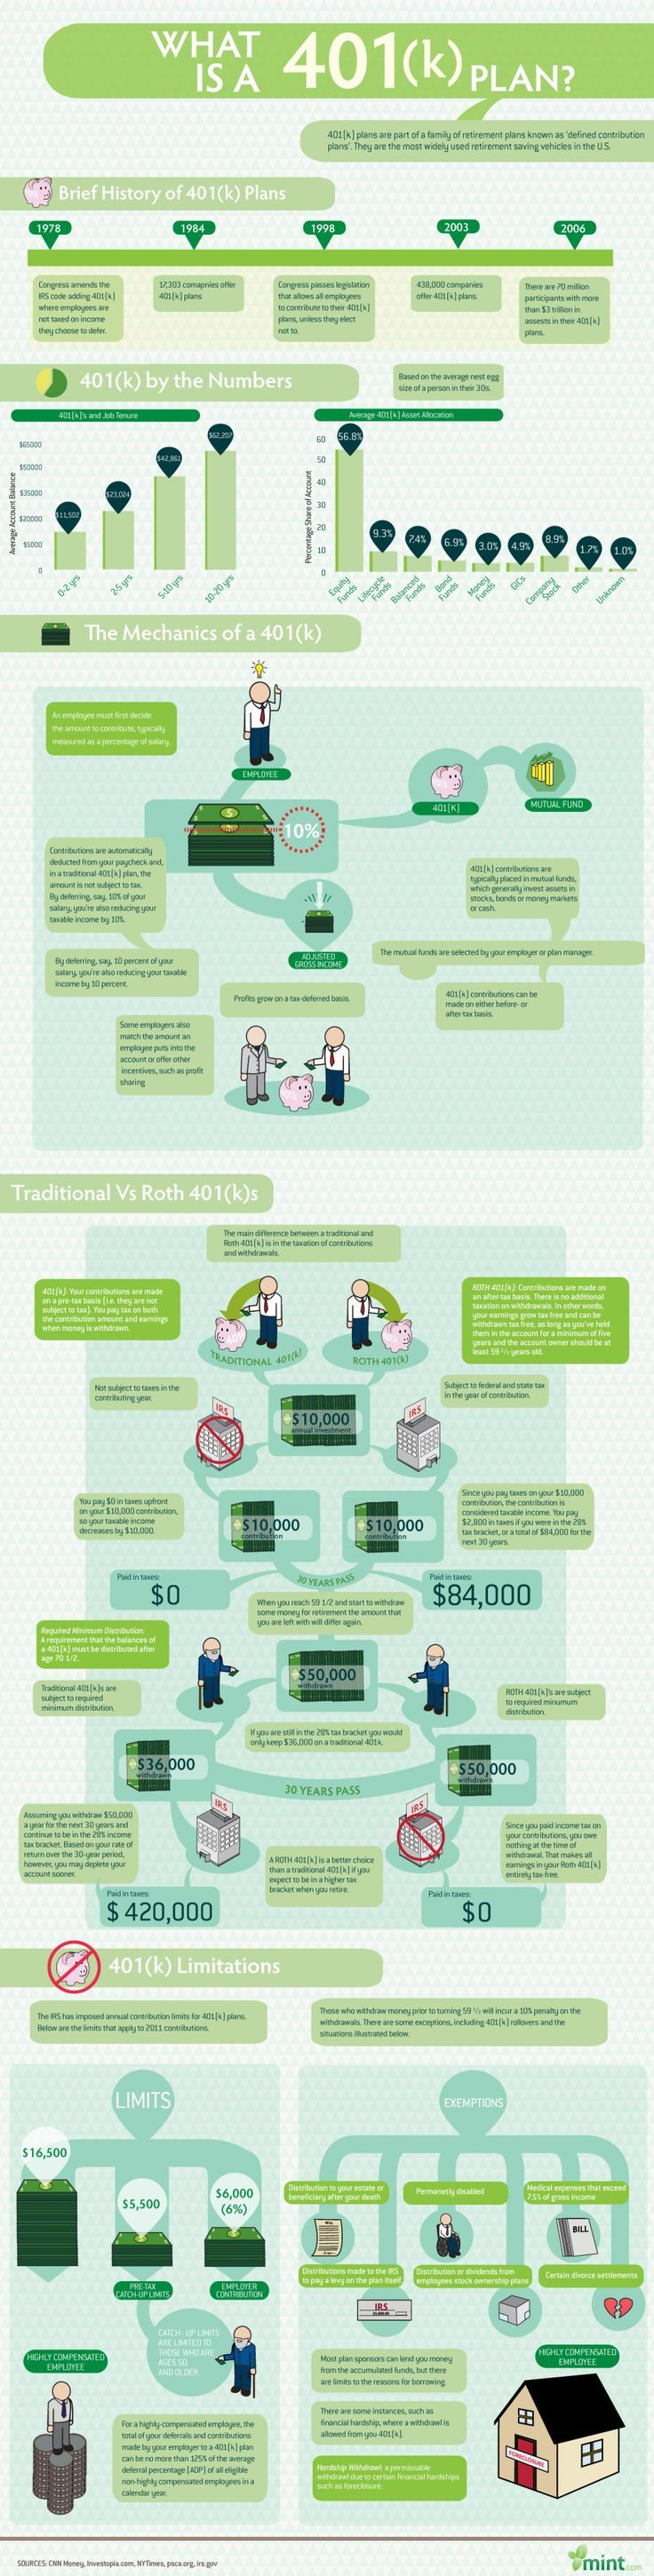 In Graphics: What Is a 401(k) Plan? Infographic